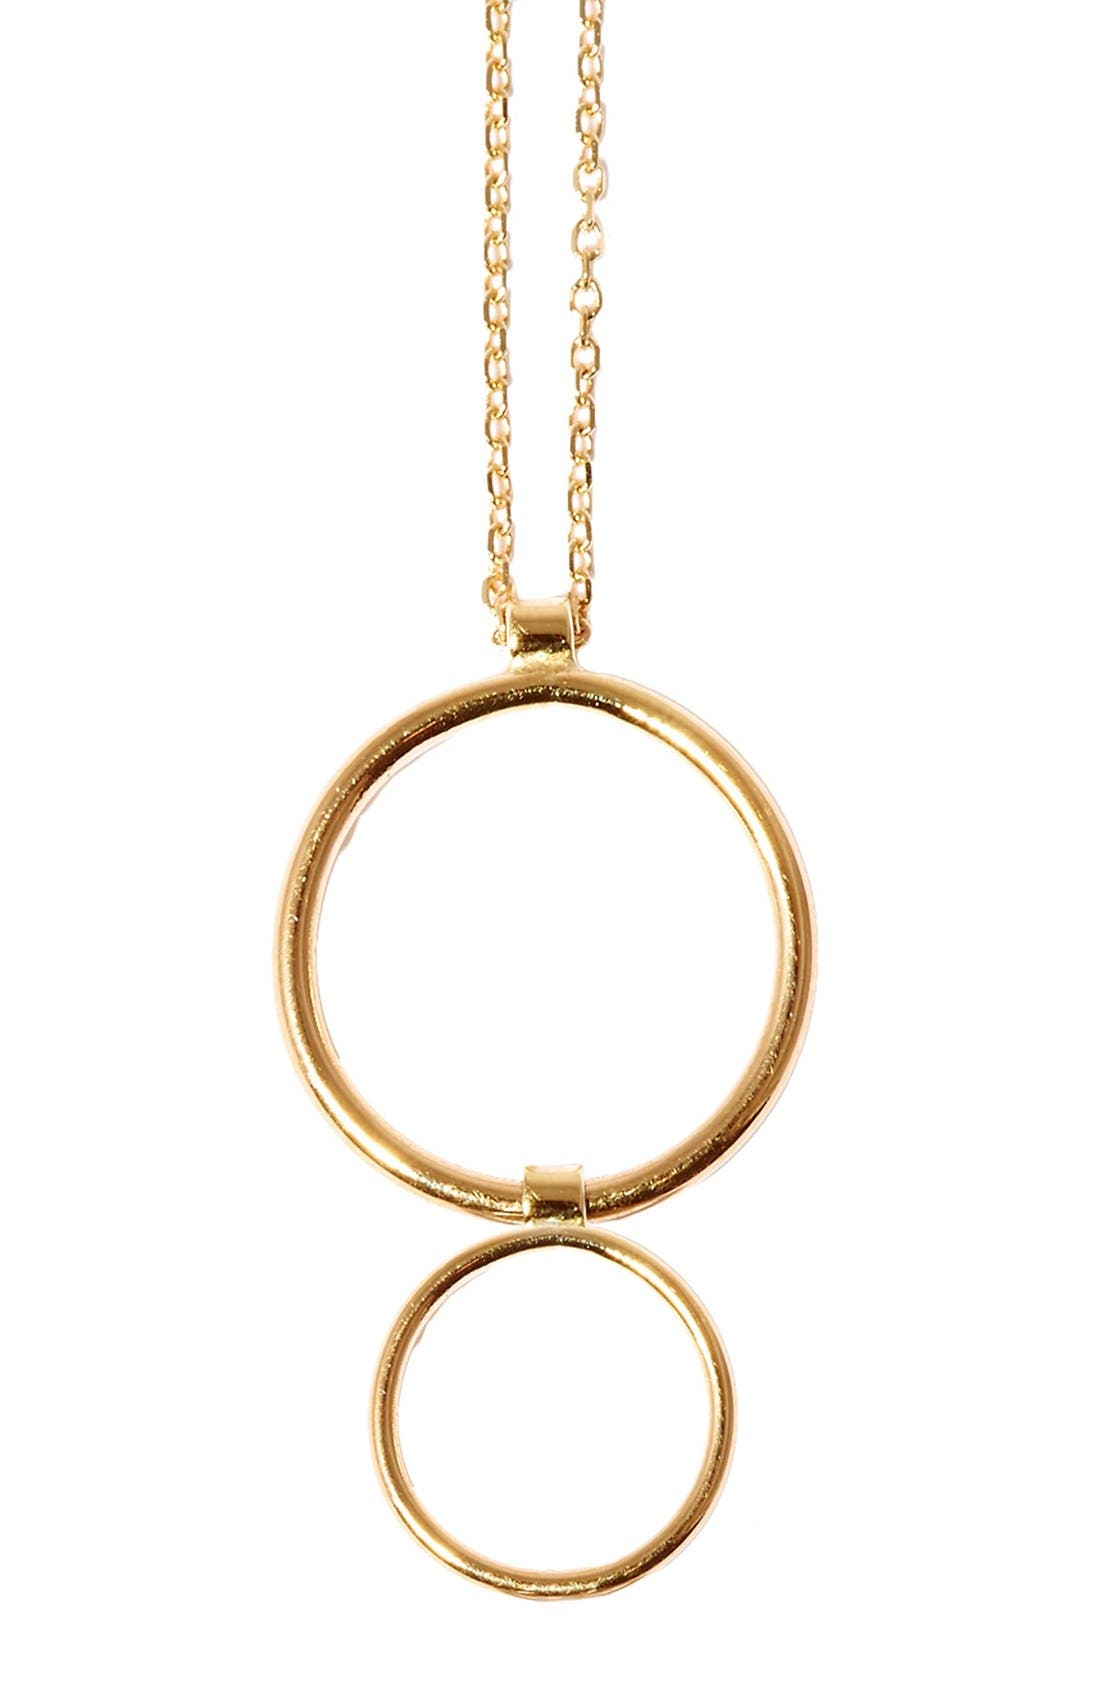 SARAH & SEBASTIAN Two Bubble Pendant Necklace